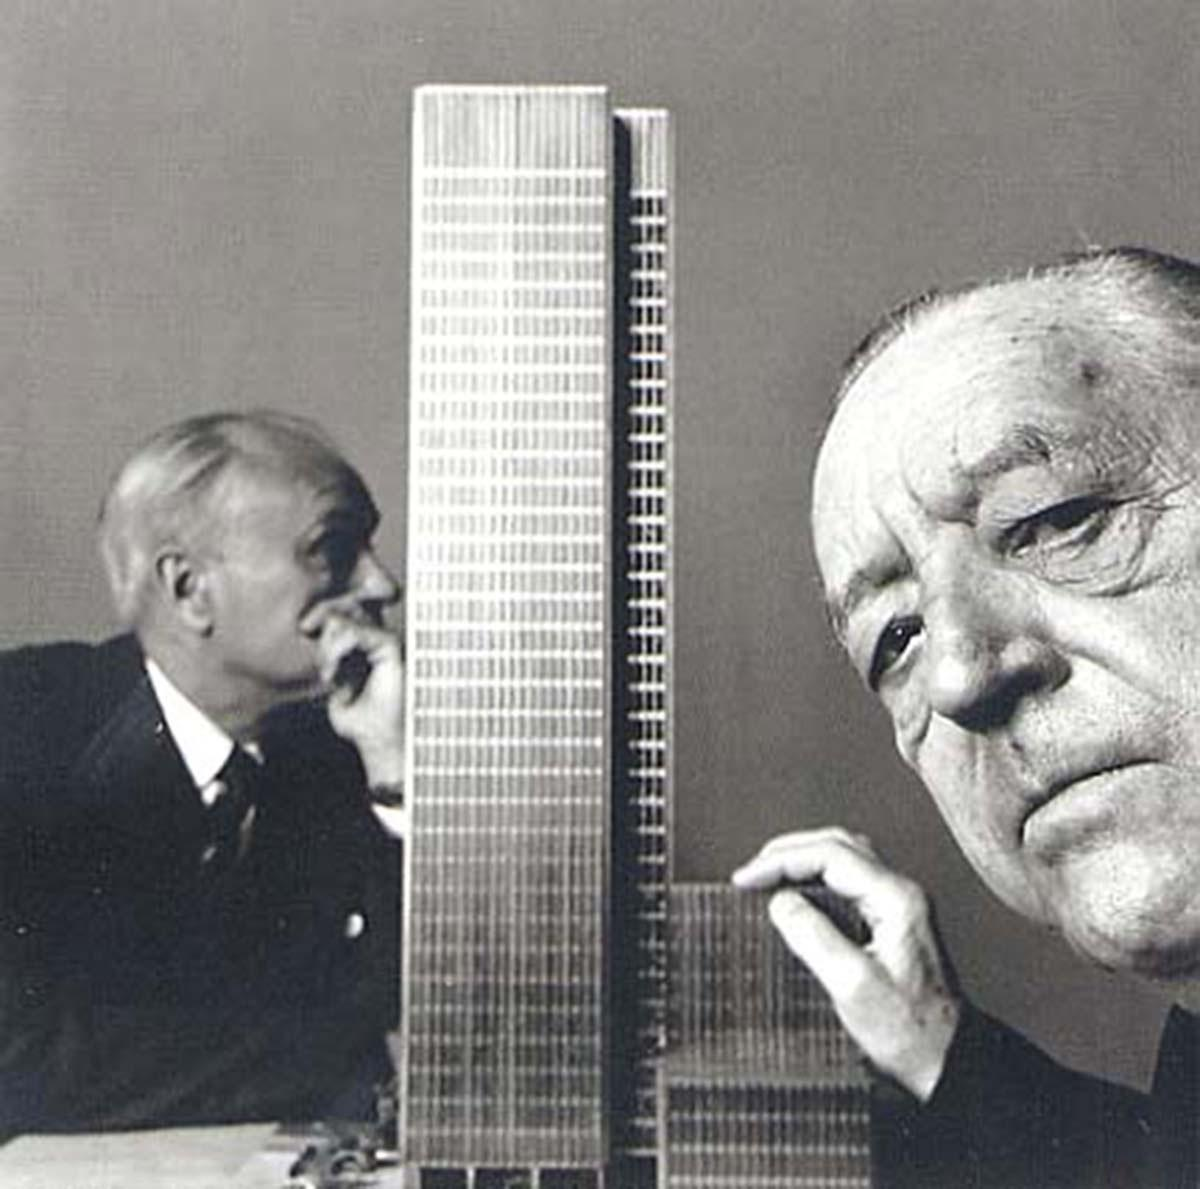 Hervorragend Mies Van Der Rohe With A Model Of The Seagram Building, New York, 1958